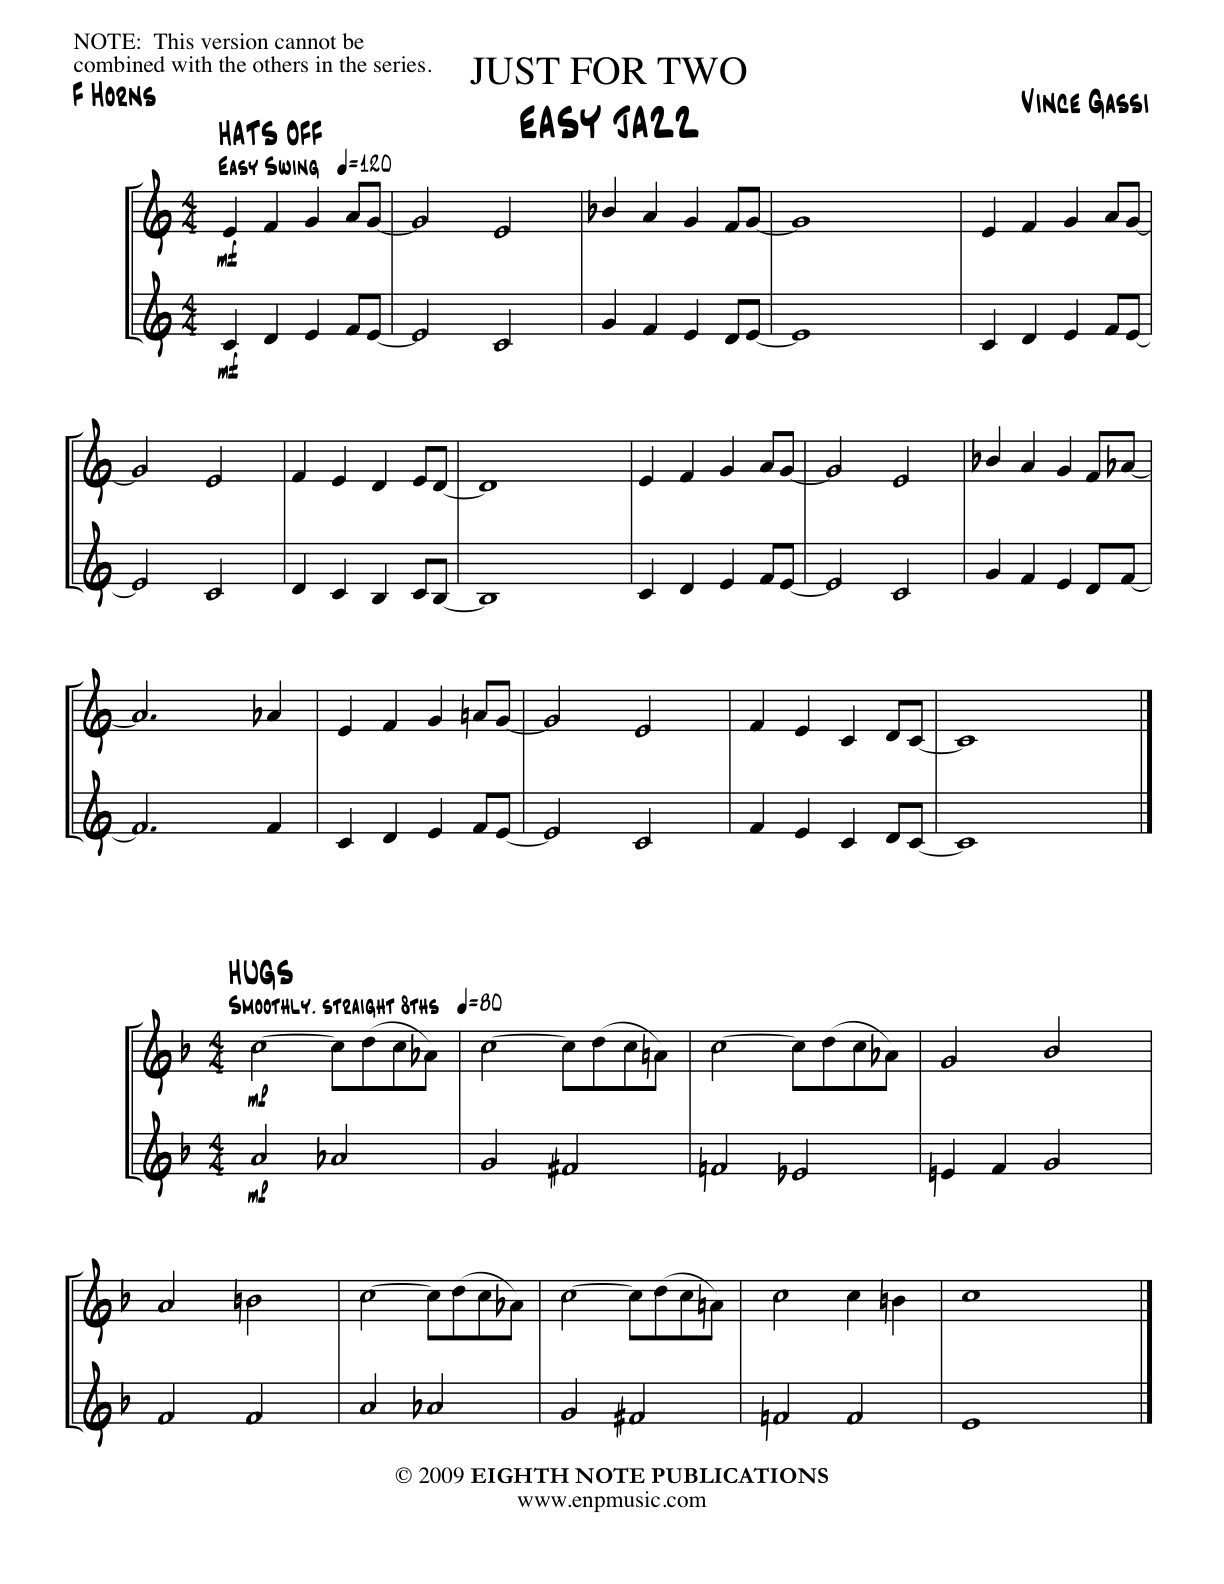 Just for 2 - EASY JAZZ - Stand Alone for 2 F Horns - Vince Gassi